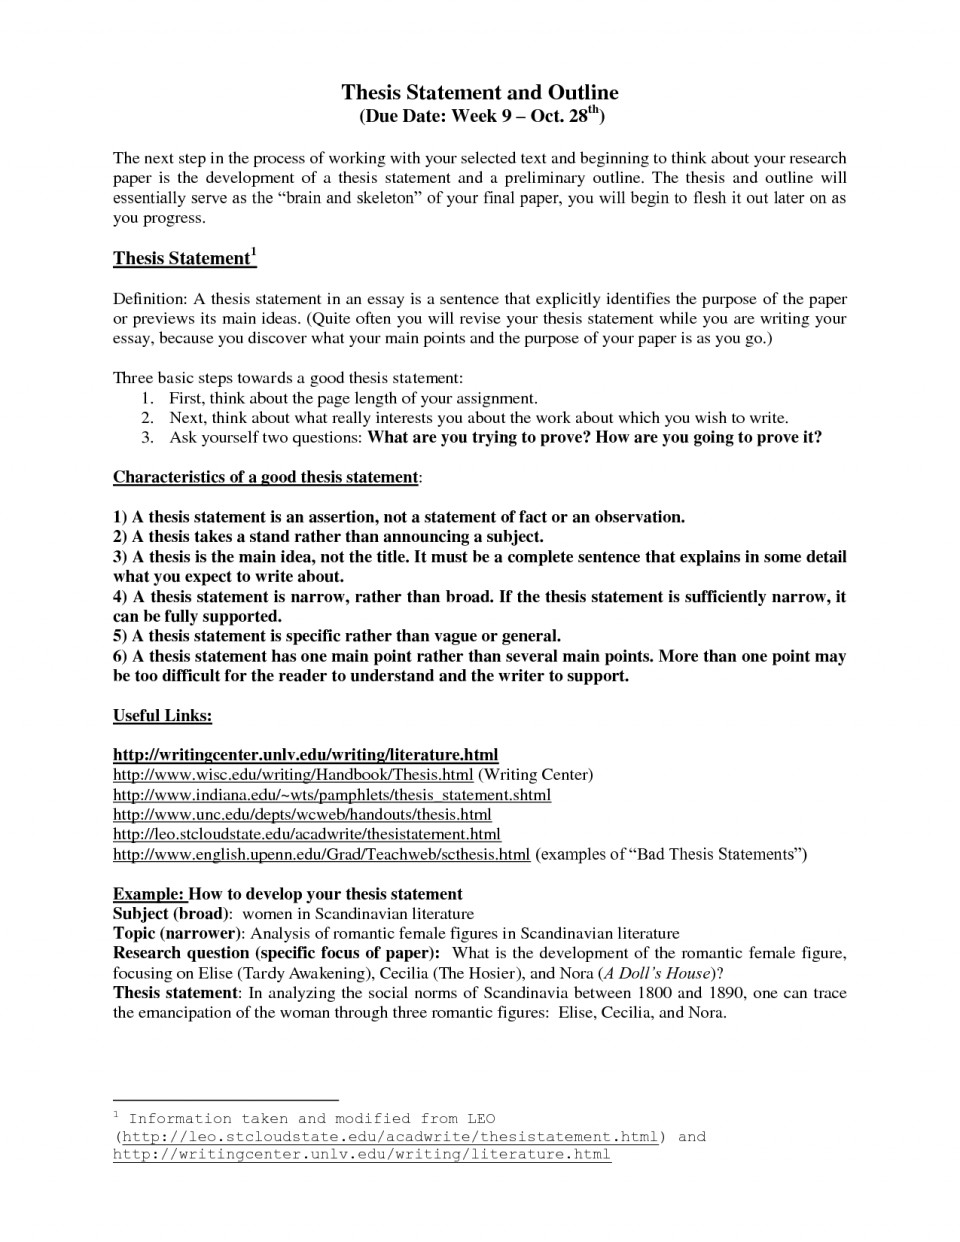 015 An Example Of Apa Style Research Paper Stupendous A Guide For Writing Papers Full 960